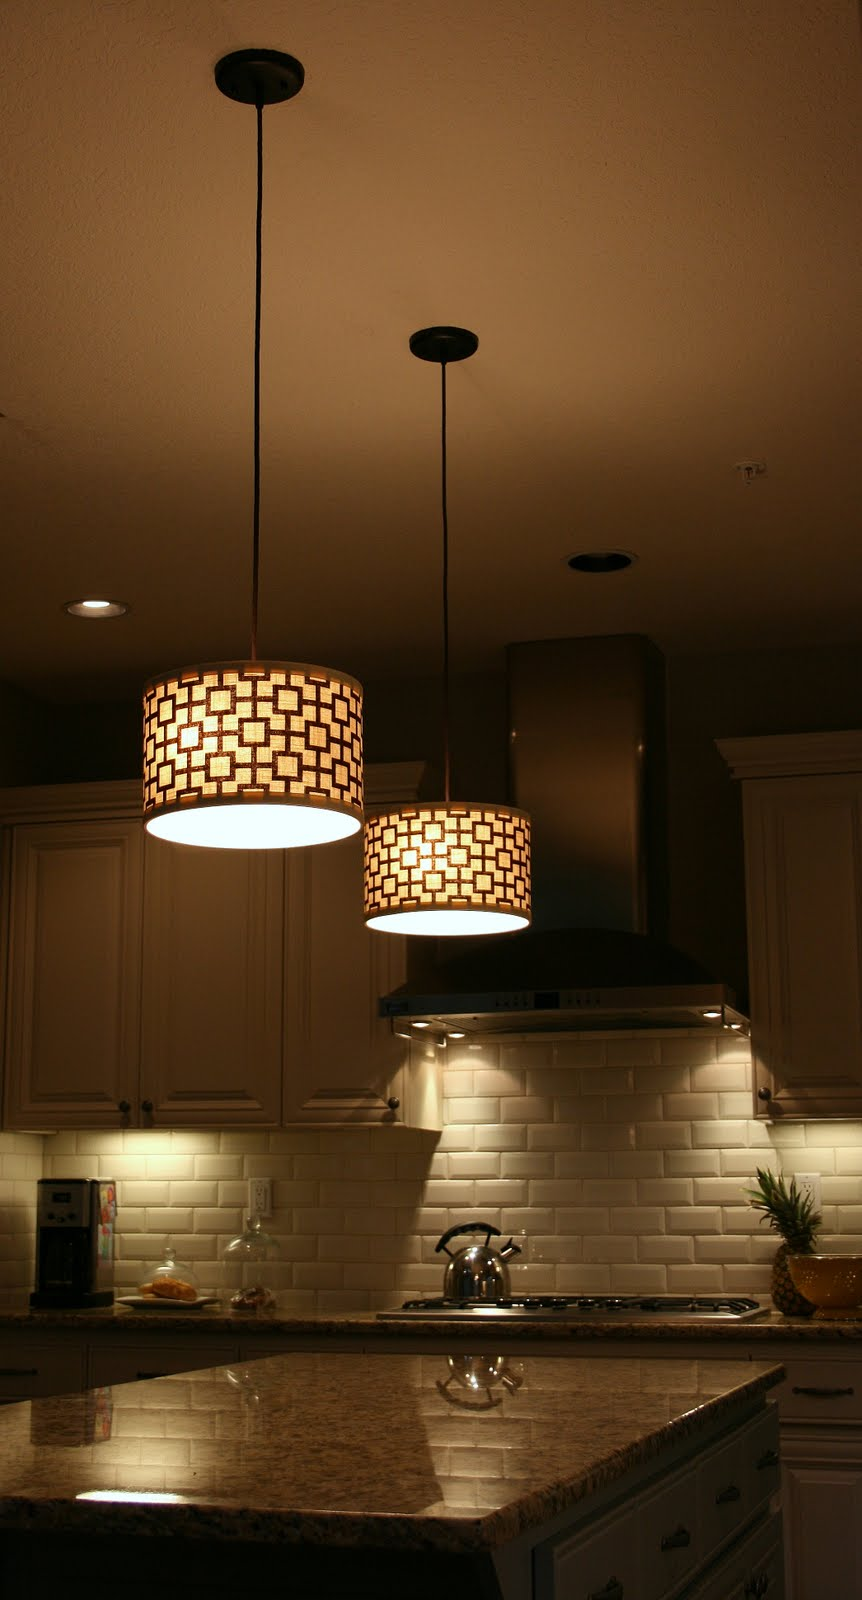 Mini Pendant Lights for Kitchen Island | 862 x 1600 · 103 kB · jpeg | 862 x 1600 · 103 kB · jpeg